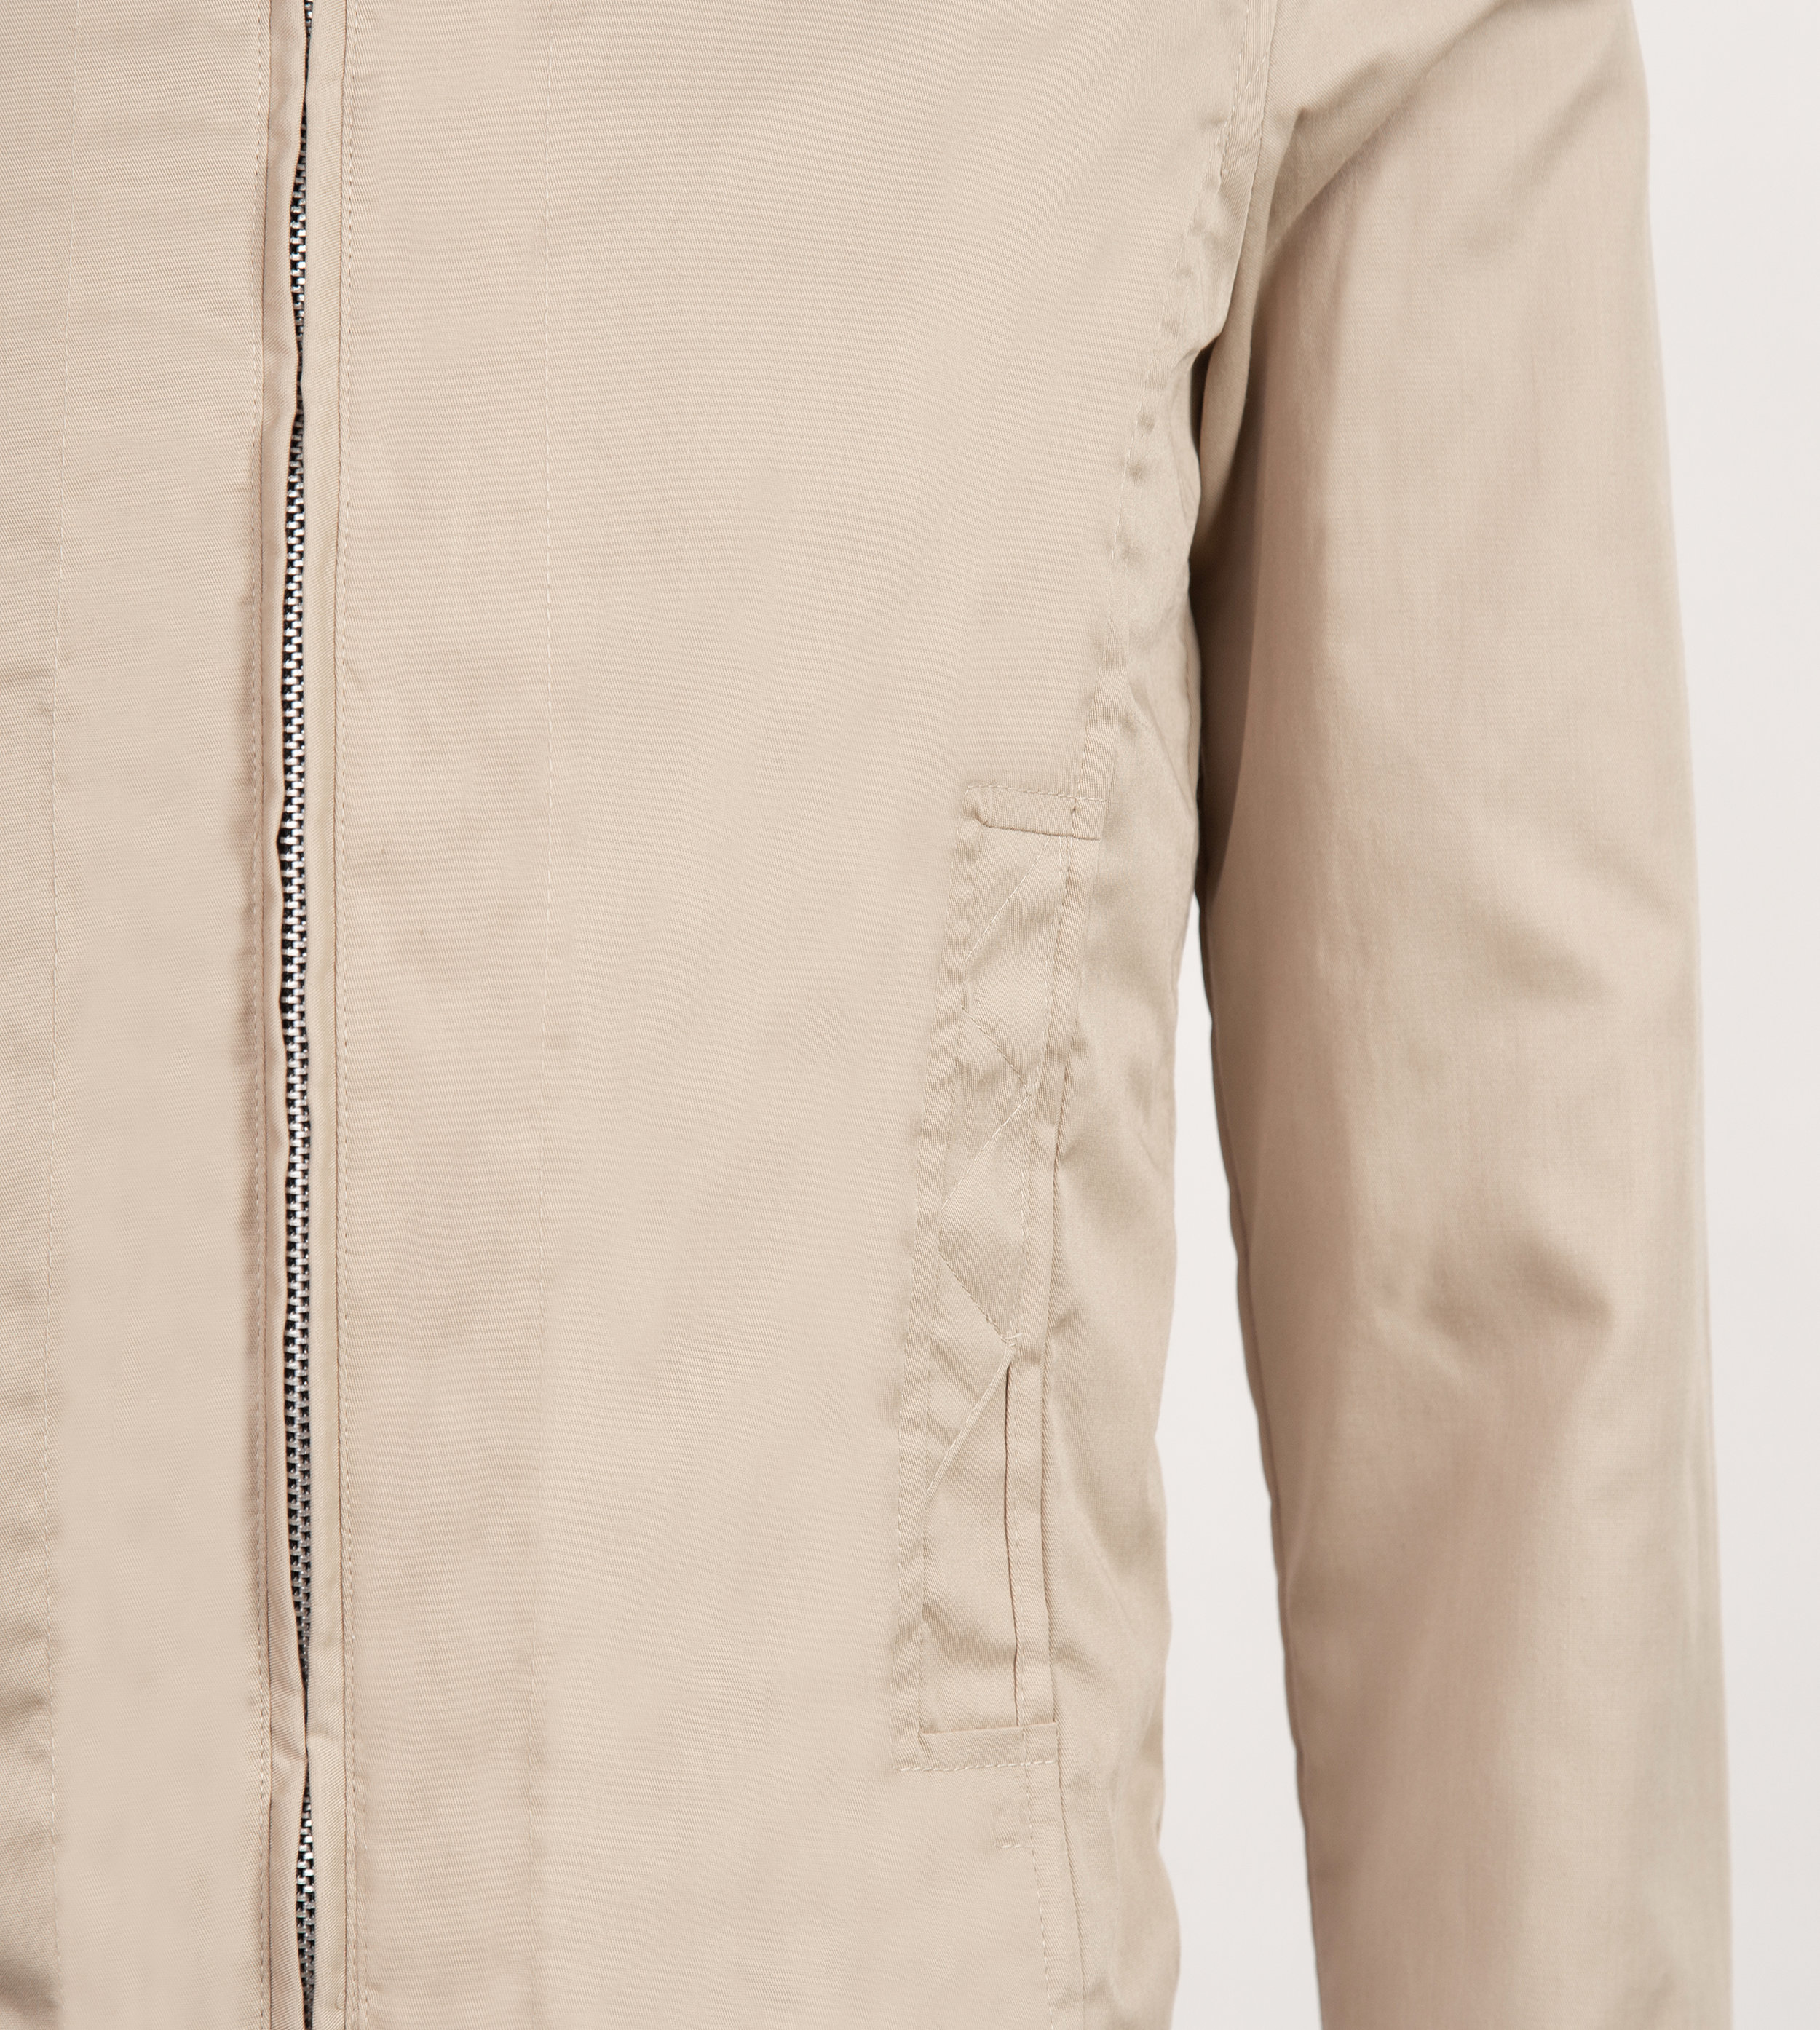 Tailored Projects-Custom Jacket-Bomber Jacket-NIA-Sewing.jpg